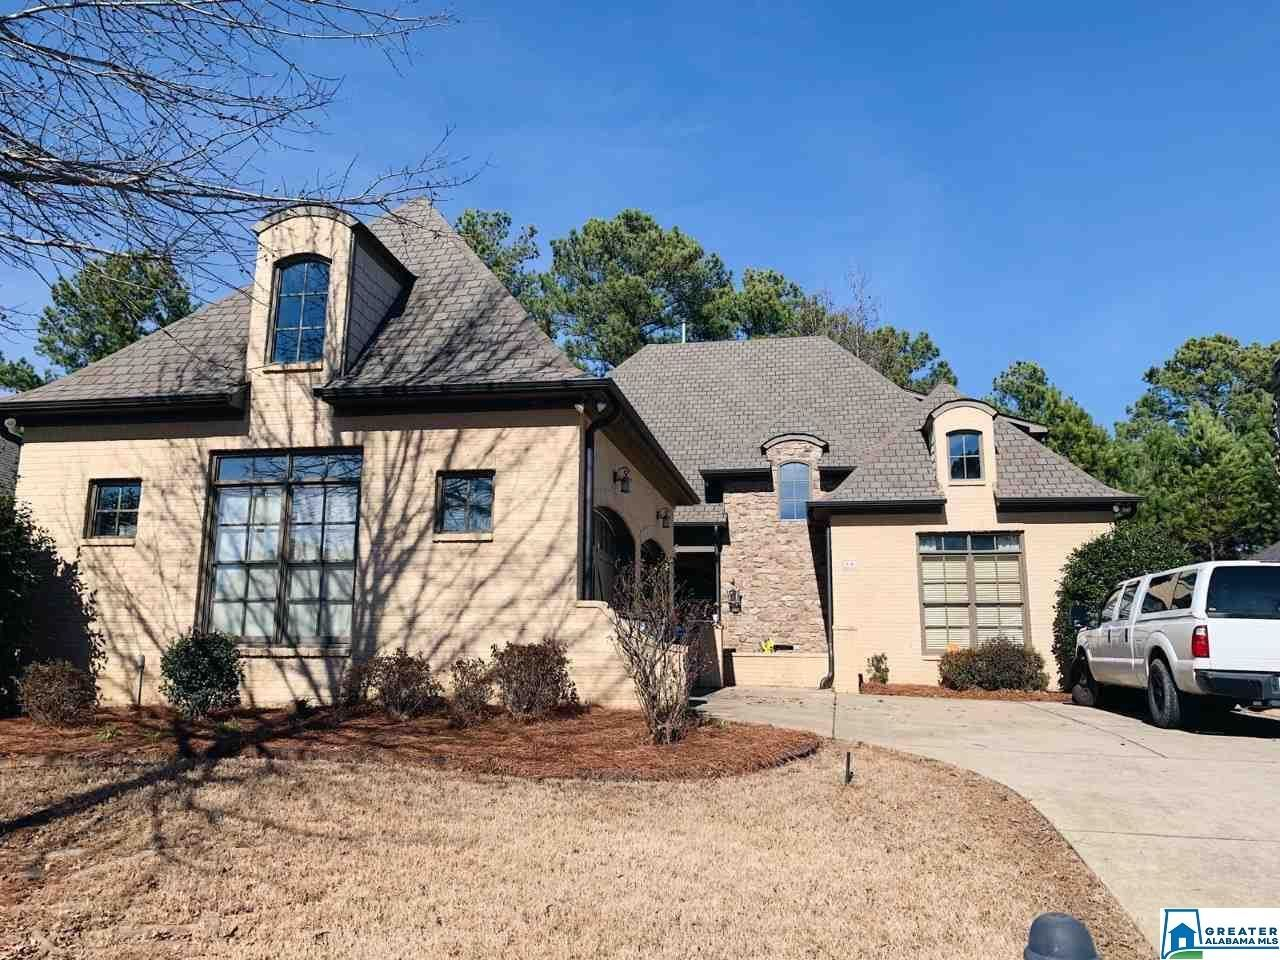 14 WATERFORD PL, Trussville, AL 35173 - MLS#: 872527